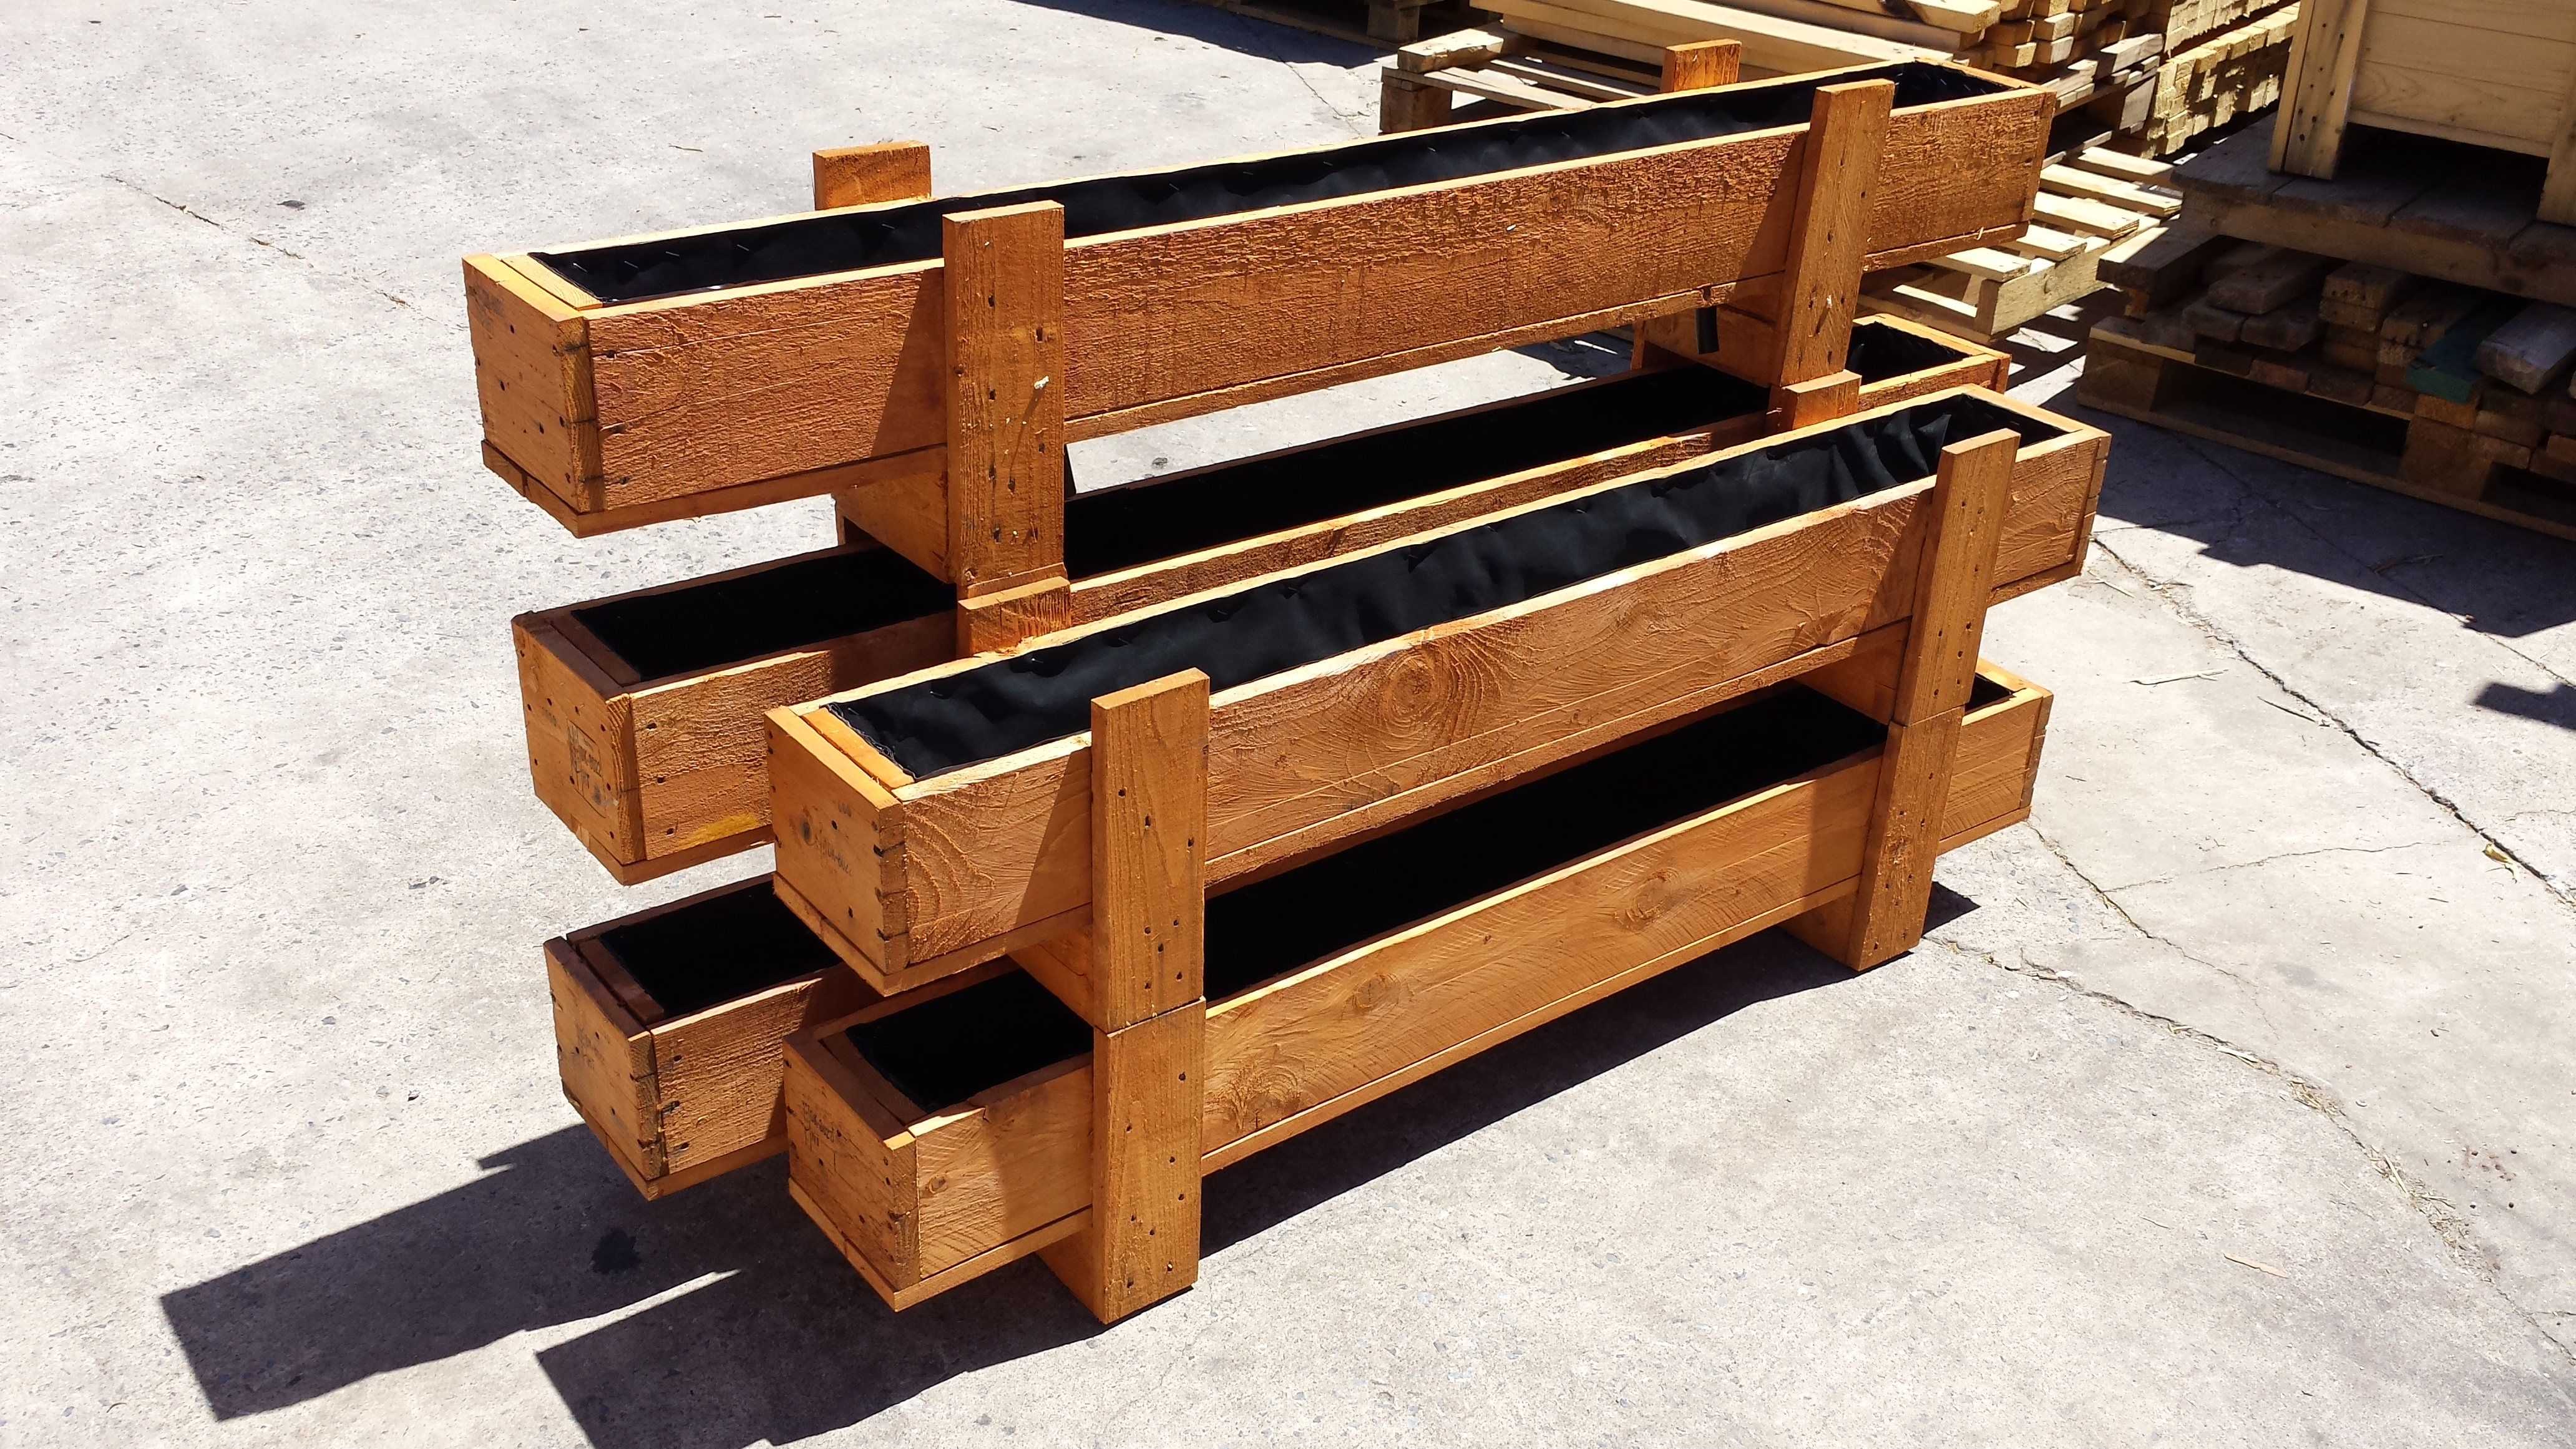 Recycled Transport Crate Planters